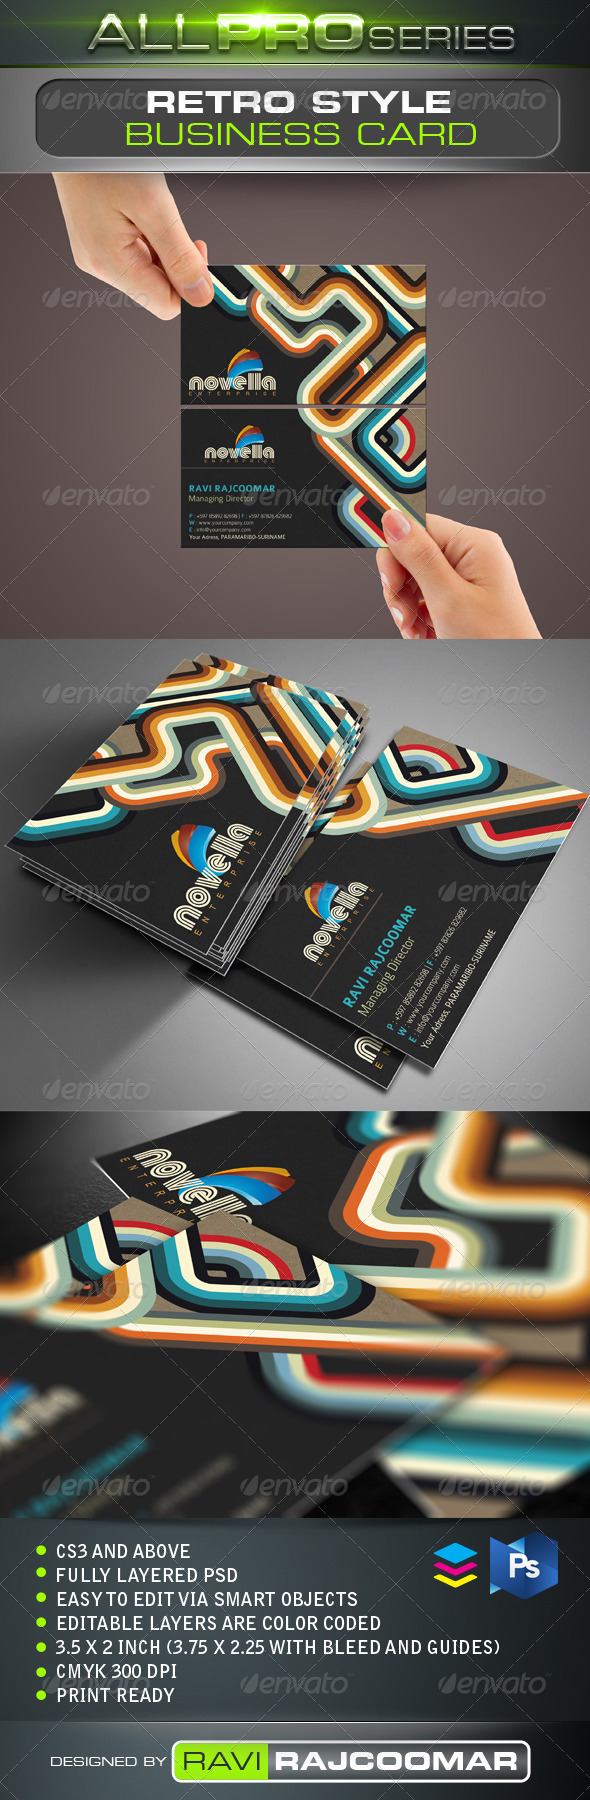 Retro style business card by ravi rajcoomar graphicriver retro style business card business cards print templates reheart Image collections